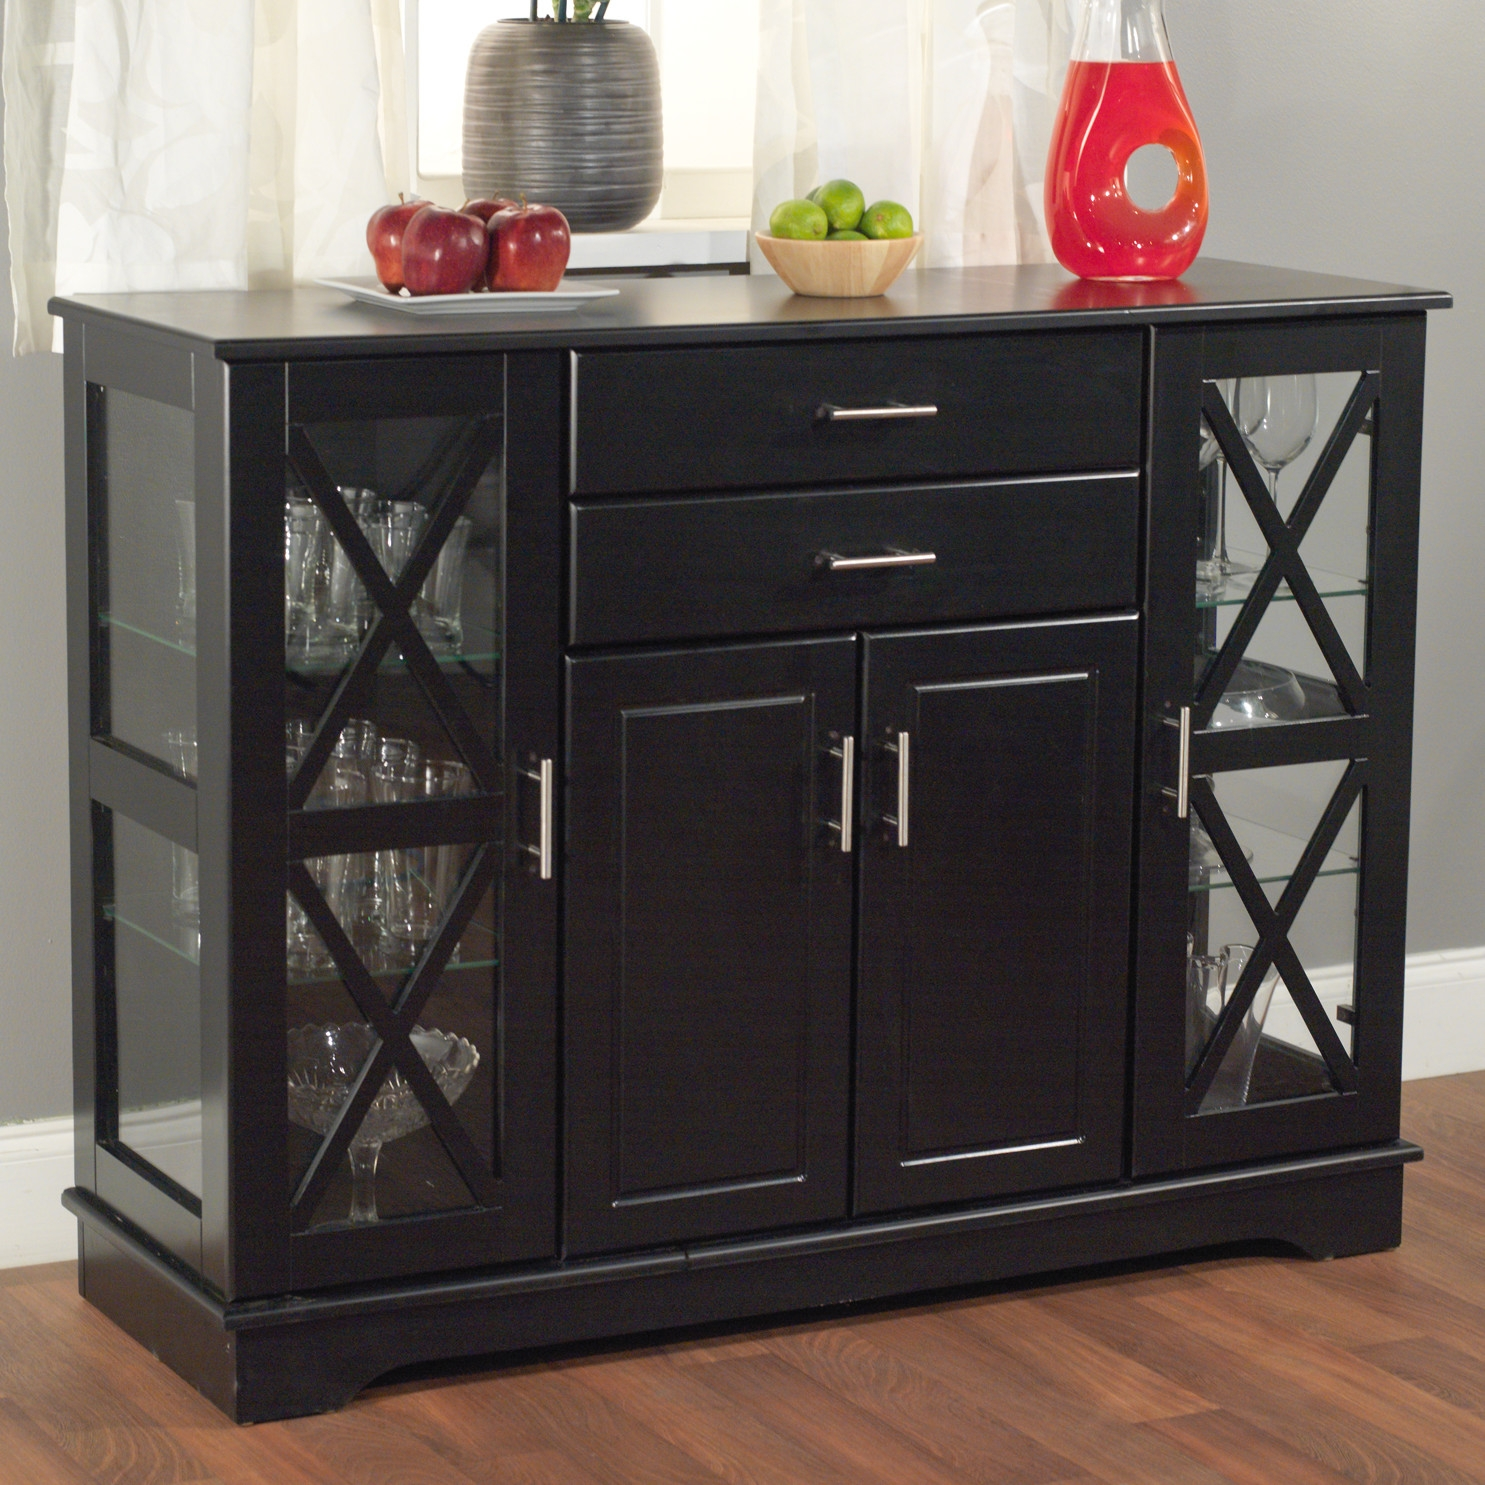 Black Wood Buffet Dining-room Sideboard with Glass Doors ...